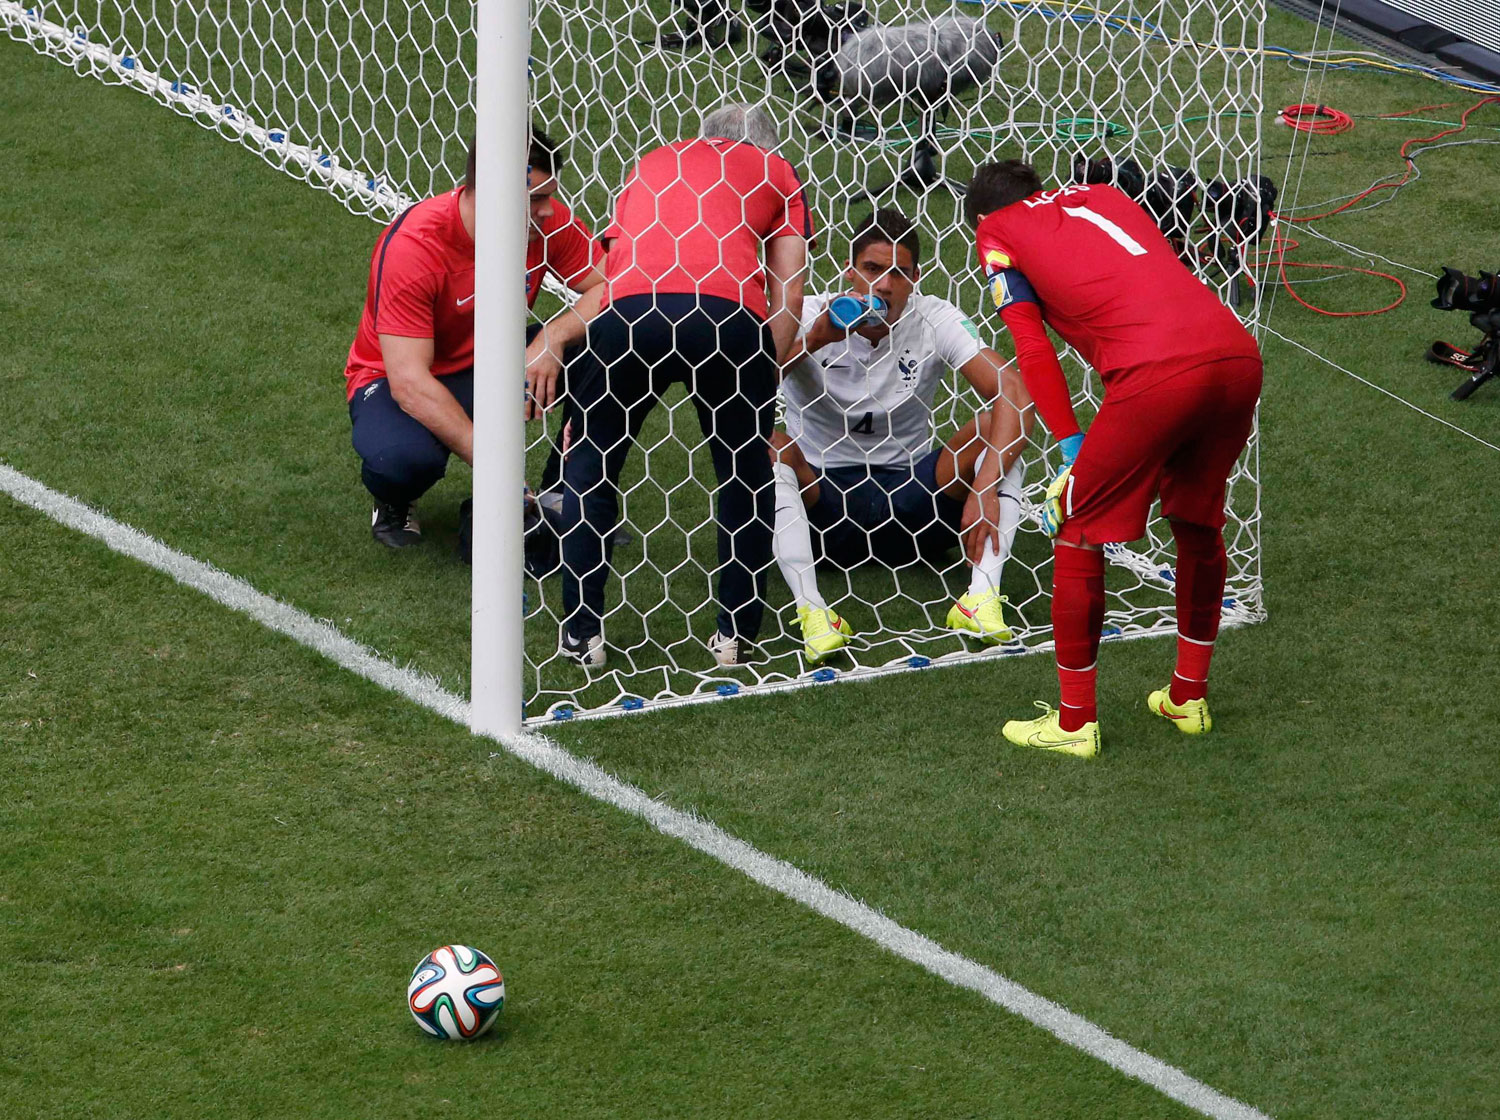 France's goalkeeper Hugo Lloris looks at teammate Raphael Varane who sits in the net after being hit in the face by a ball, during their game against Nigeria at the Brasilia National Stadium in Brasilia, Brazil on June 30, 2014.